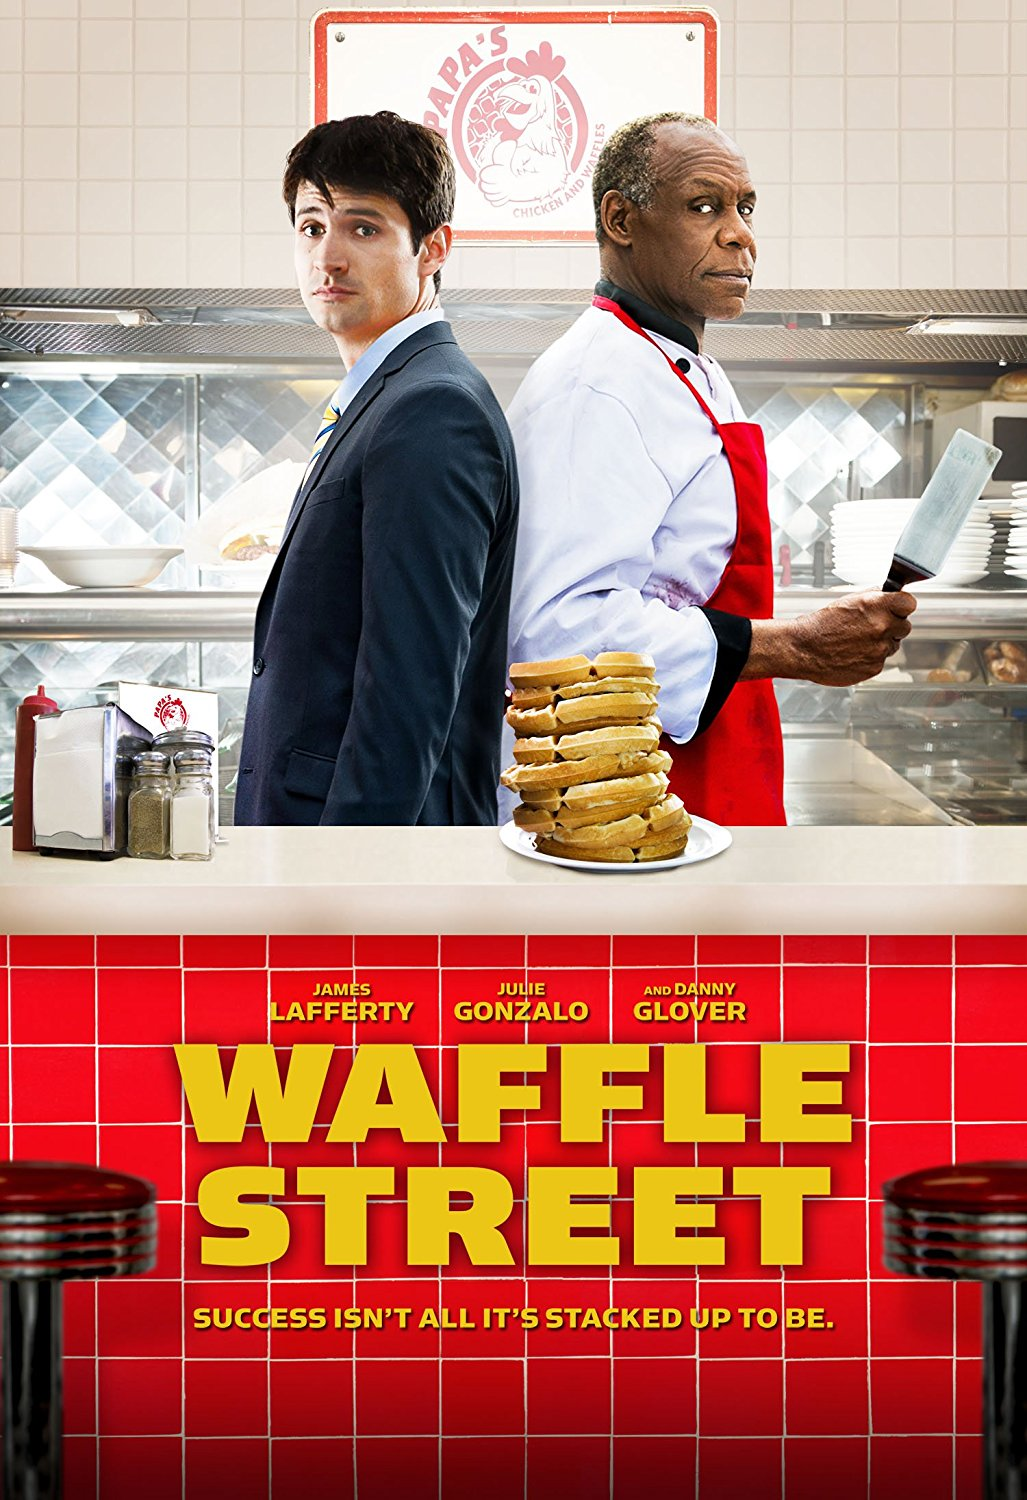 Waffle Street, a clean inspiring movie on Netflix